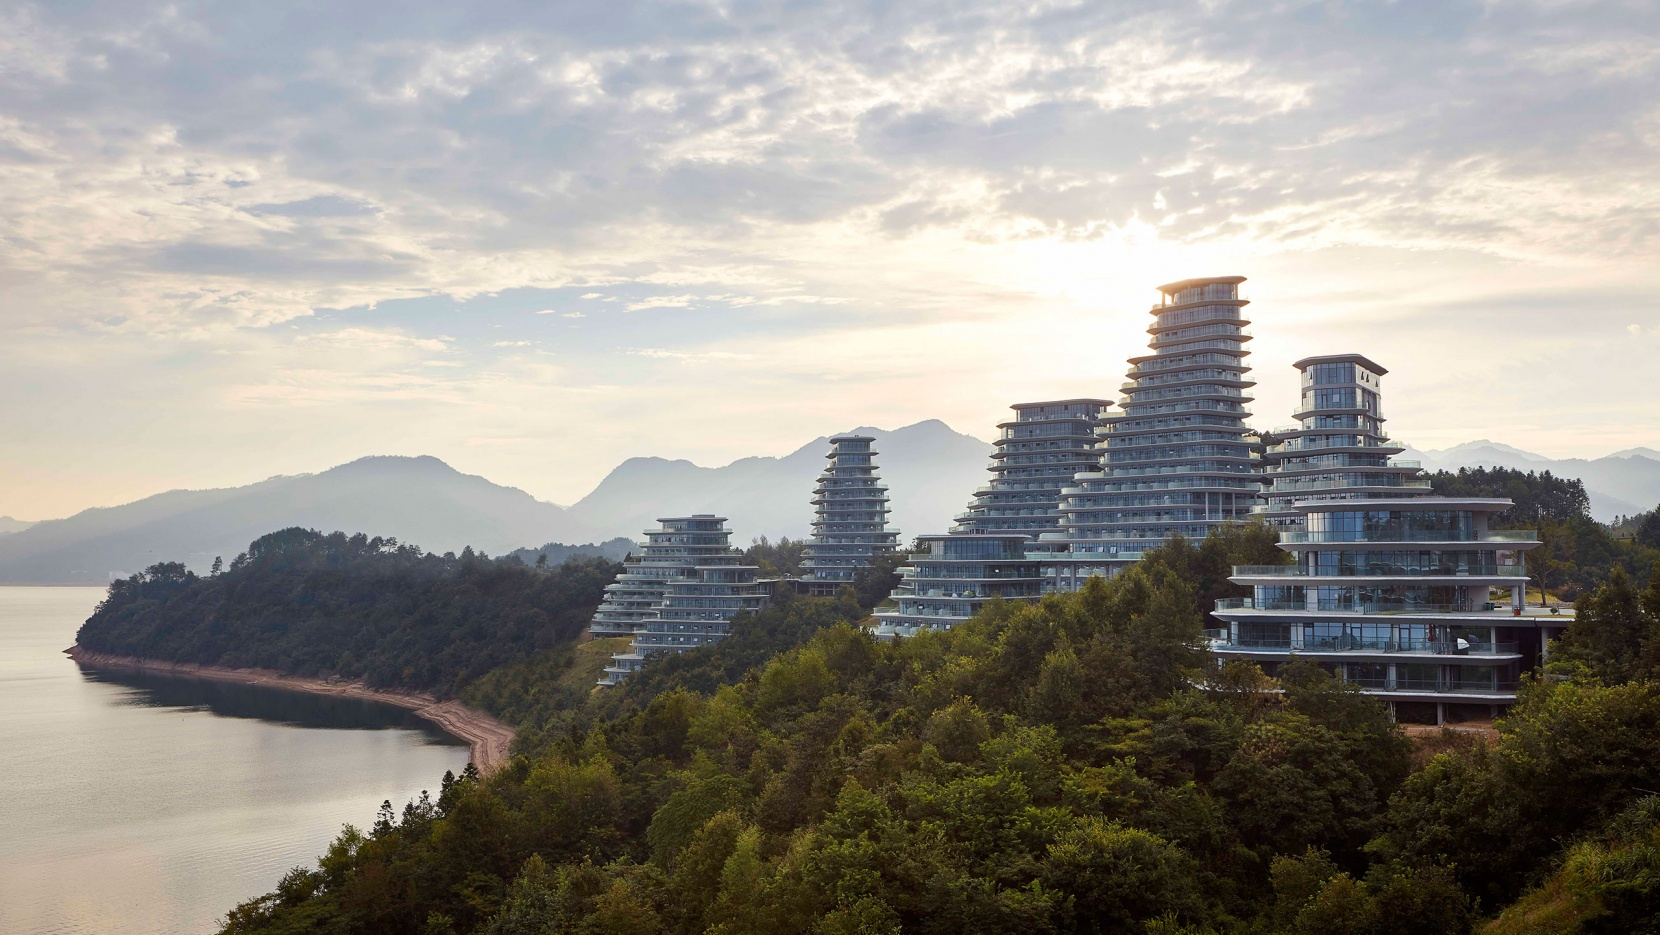 a872e98ba The Spiritual Symbiosis of Architecture and Nature in Huangshan Mountain  Village